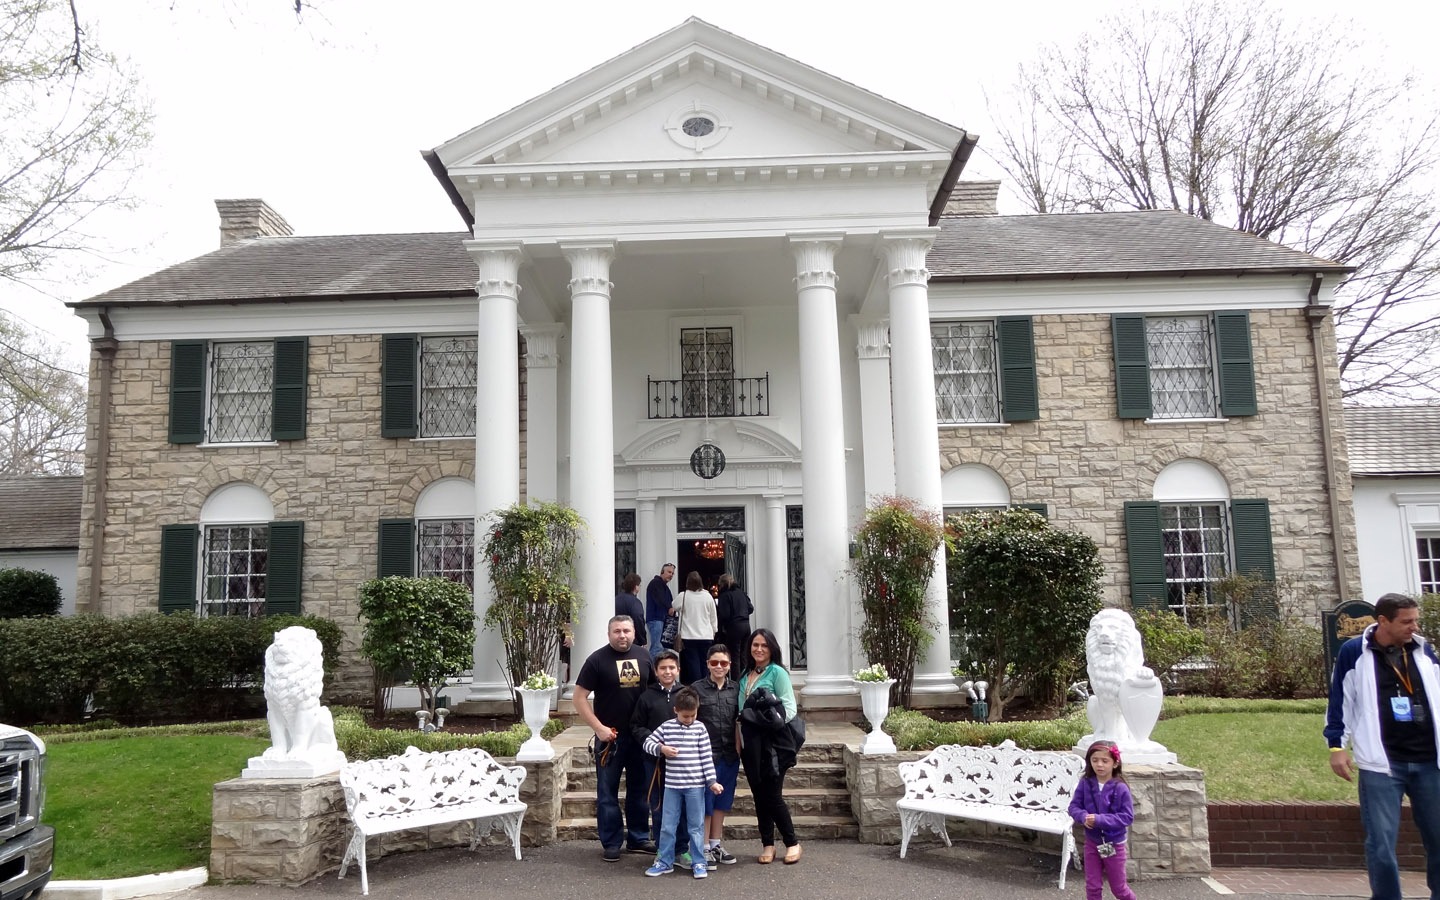 Elvis Presley's home in Graceland, Memphis, Tennessee USA 2014